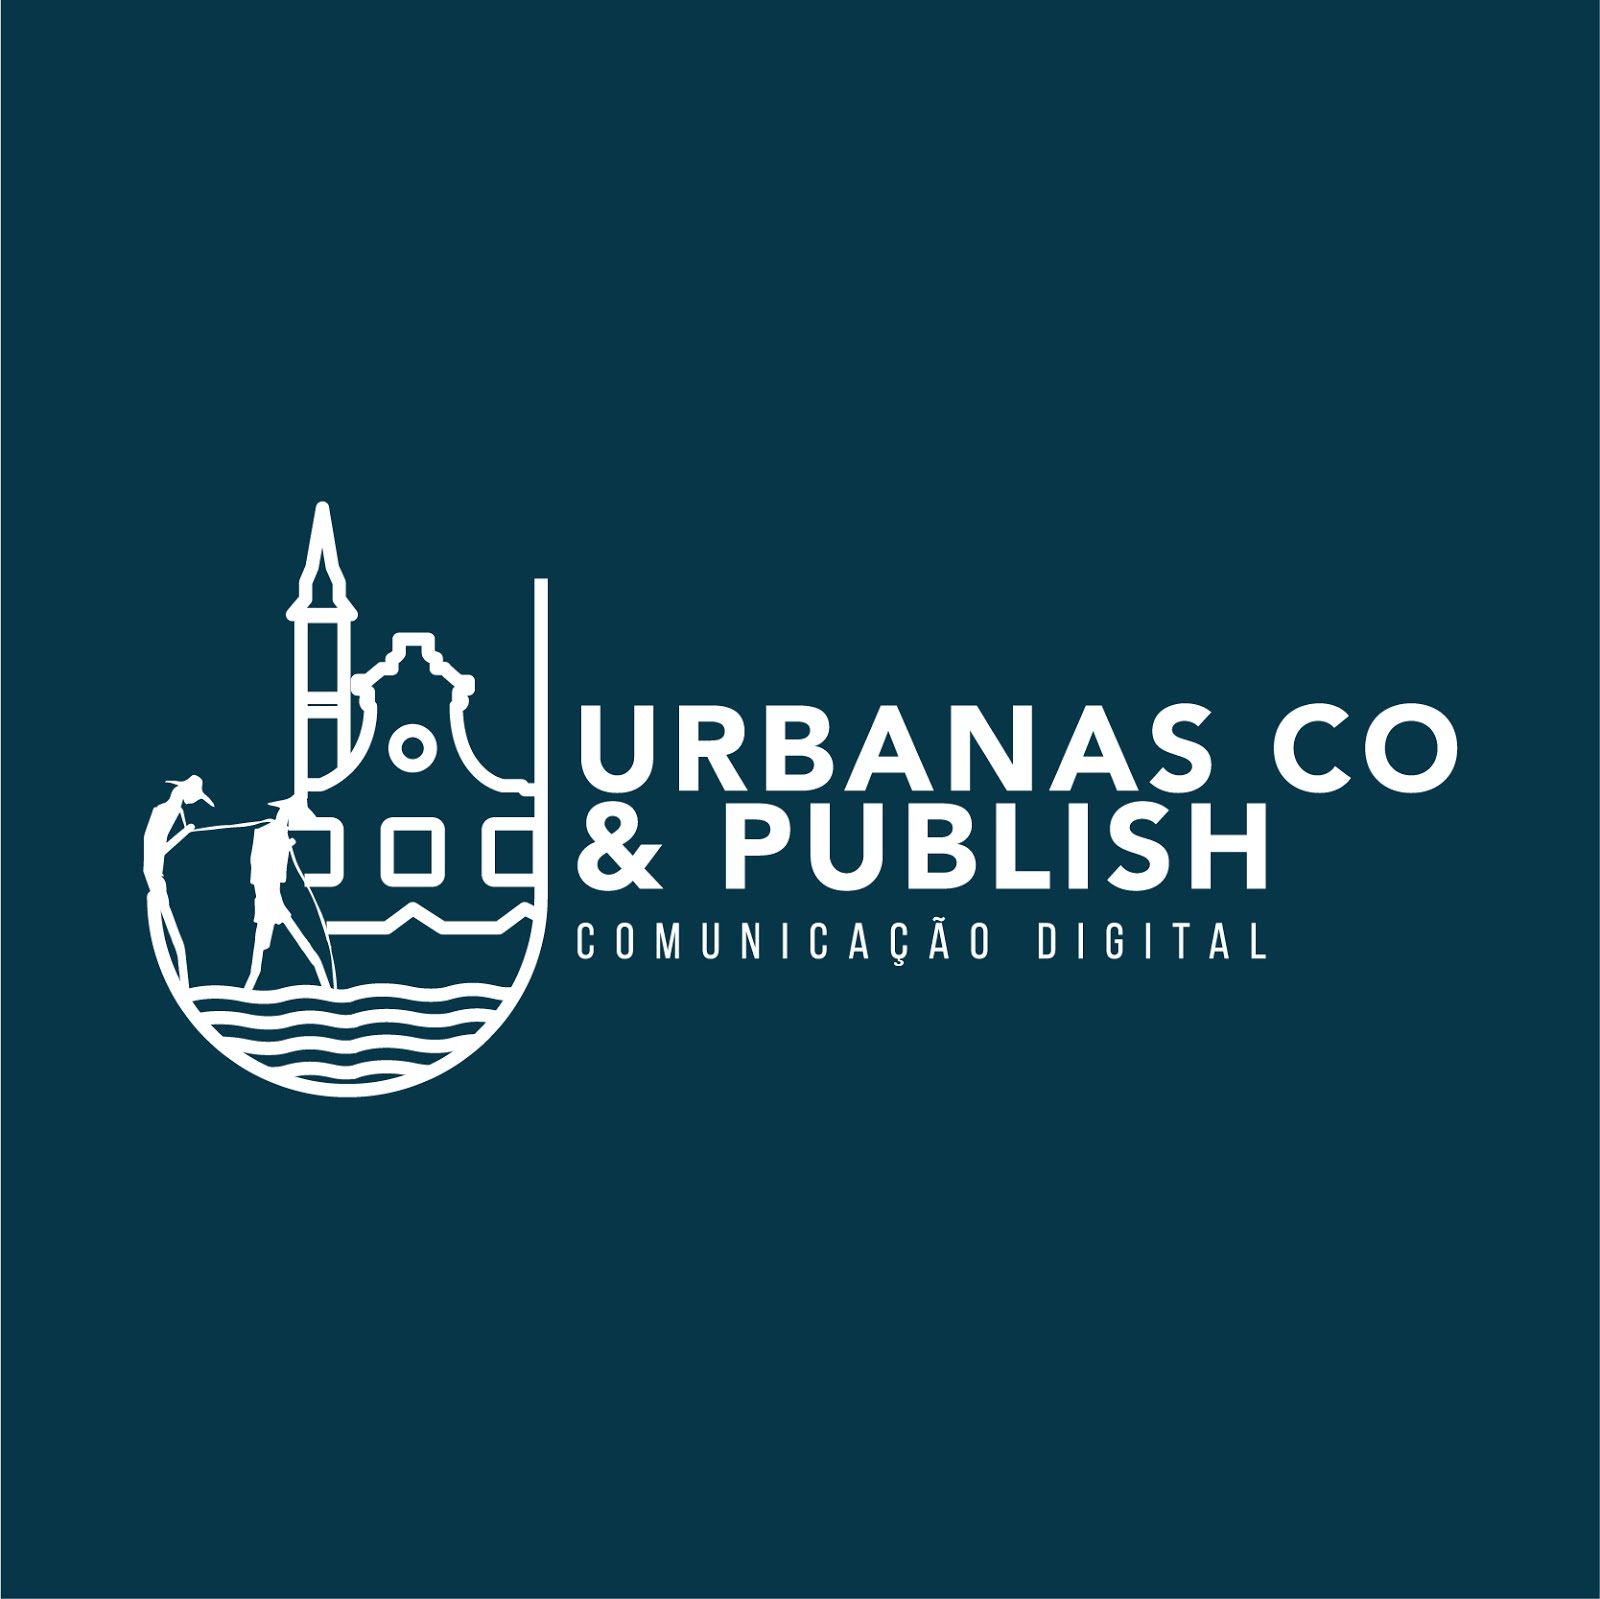 Urbanas Co&Publish